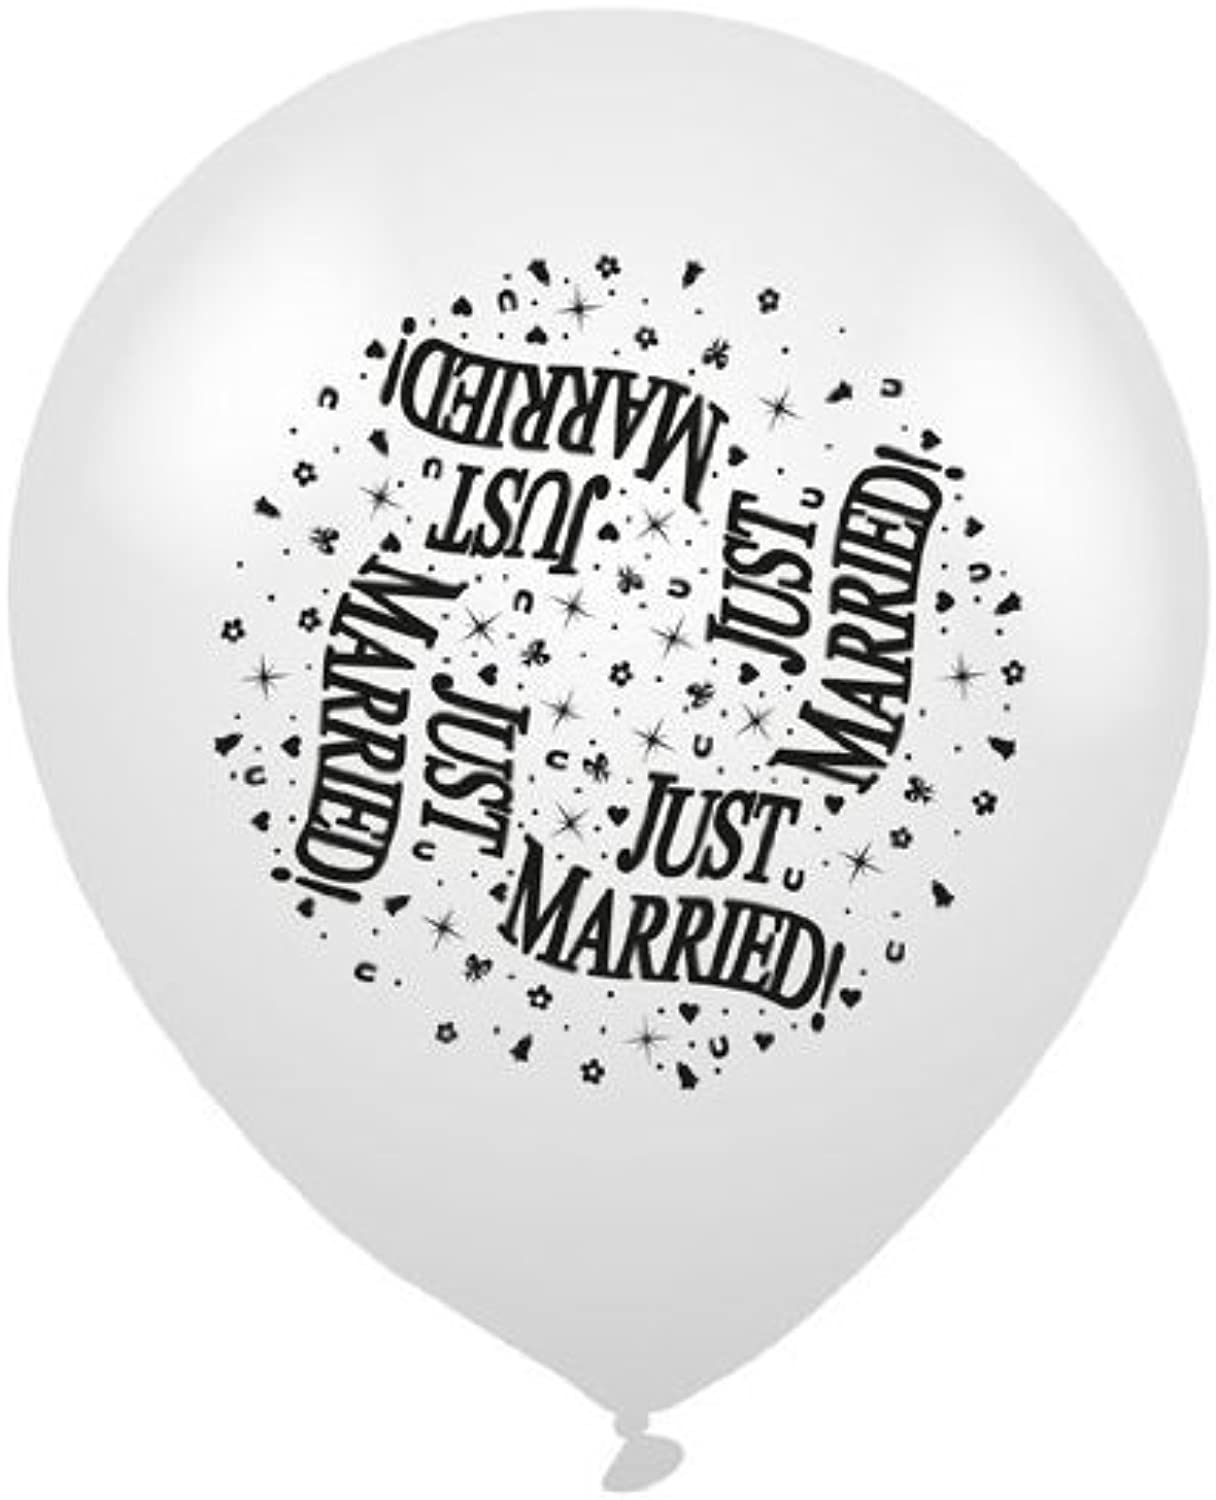 Pack of 8 gold & Silver 'Just Married' Latex Party Balloons - Air or Helium Fill by Expression Factory